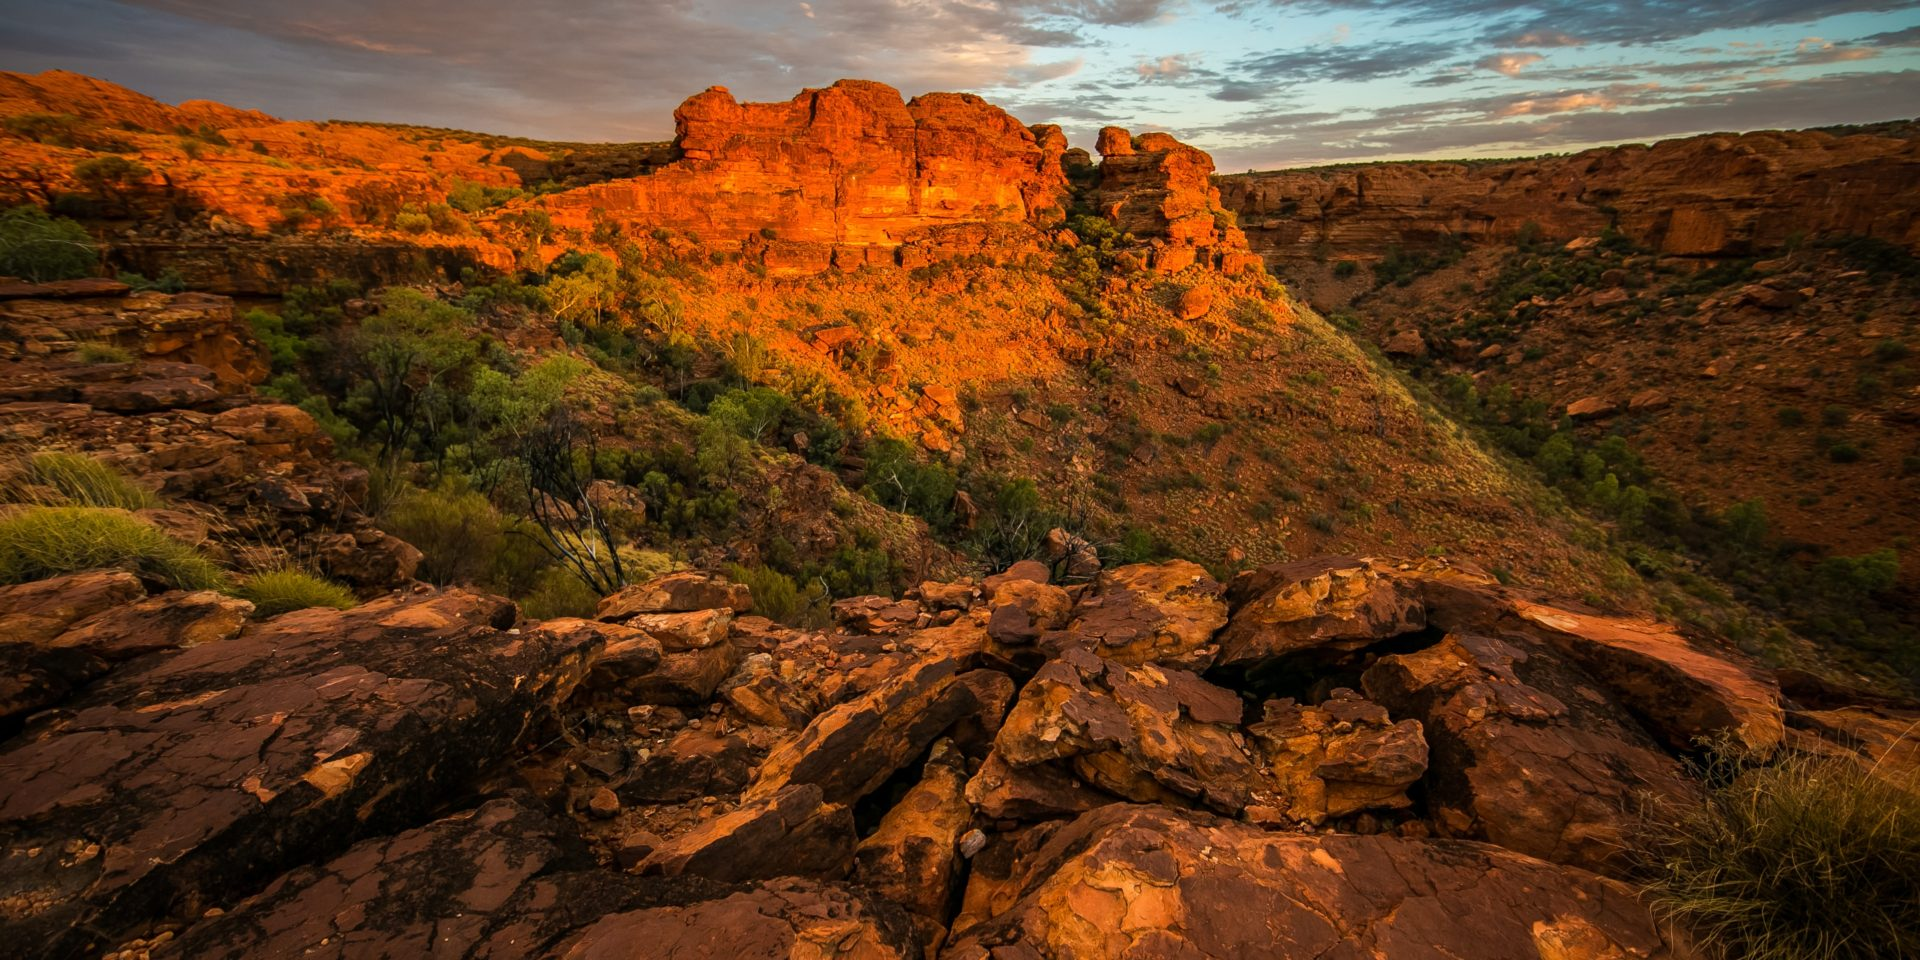 Image of Kings Canyon in Australia